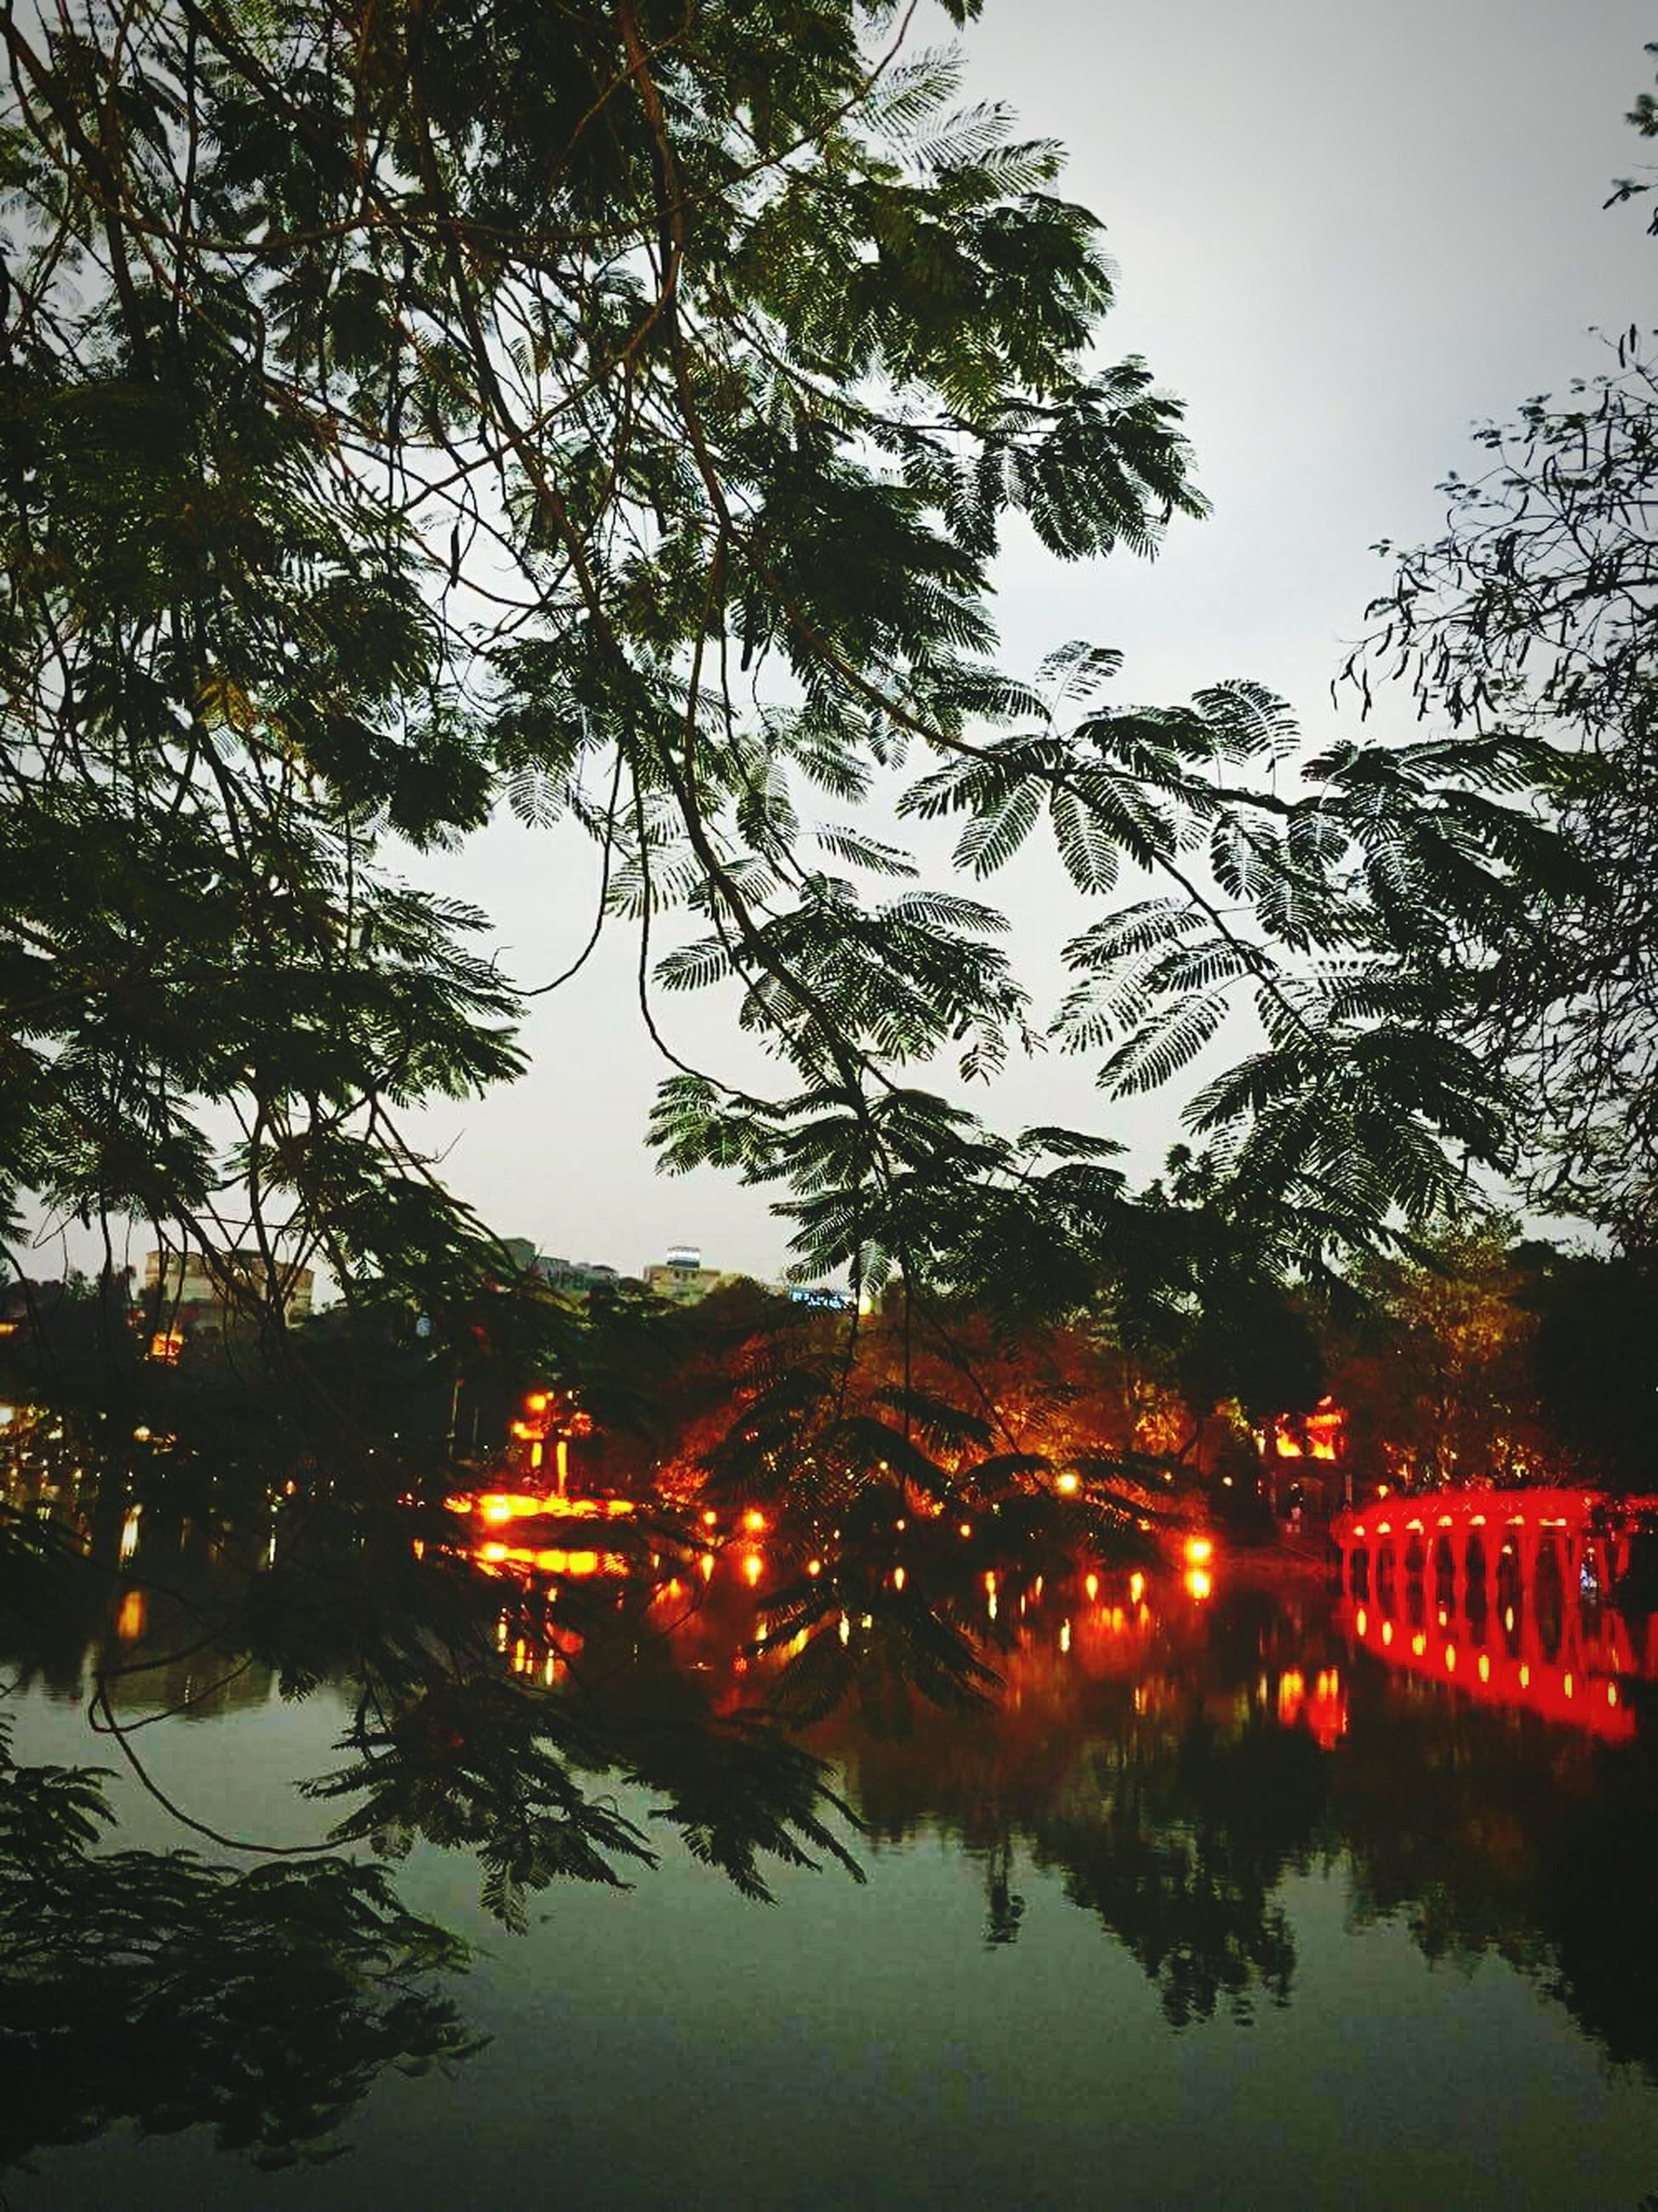 tree, reflection, water, nature, outdoors, growth, no people, sky, waterfront, illuminated, branch, beauty in nature, lake, scenics, night